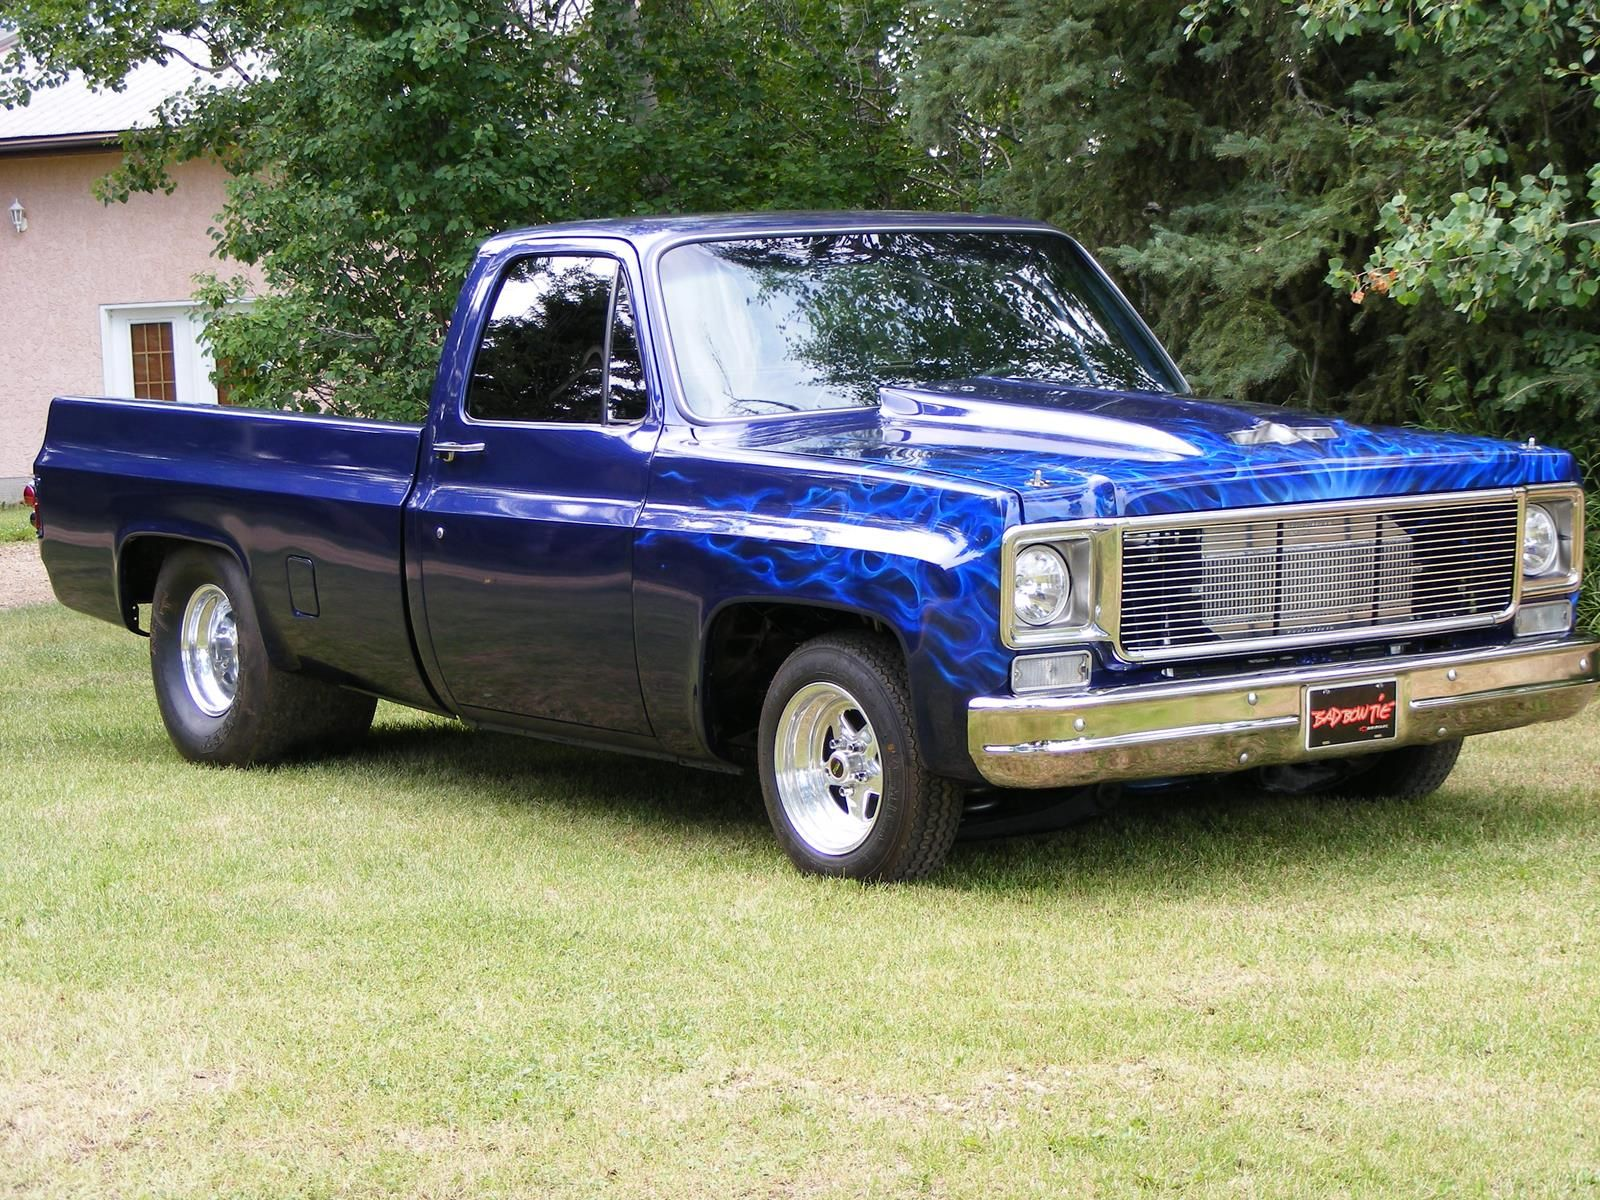 E C Edce Ca Bfe in addition Baf Ff Ee D Bbb B C A D besides Px Chevrolet K Blazer Cheyenne furthermore  also F D D Ad C Ed Ff A. on pictures of 73 87 chevy short bed gmc trucks